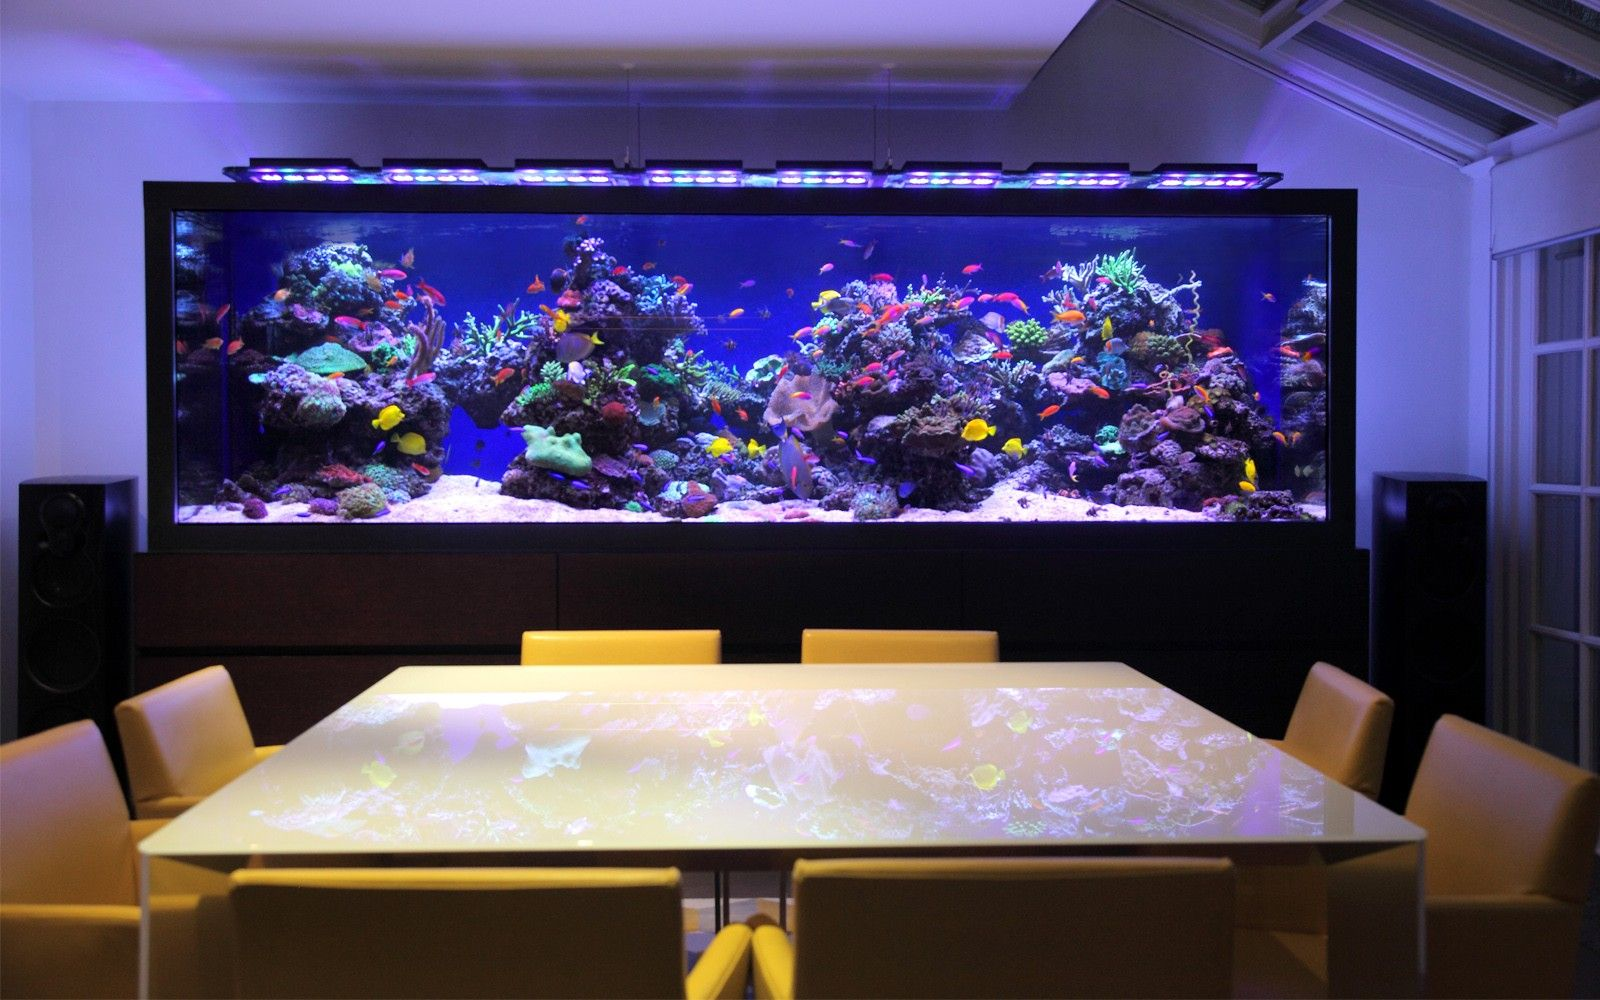 Saler Aquarium Store | Holds Over 5000 Litres Of Water And Accommodates Over 200 Marine